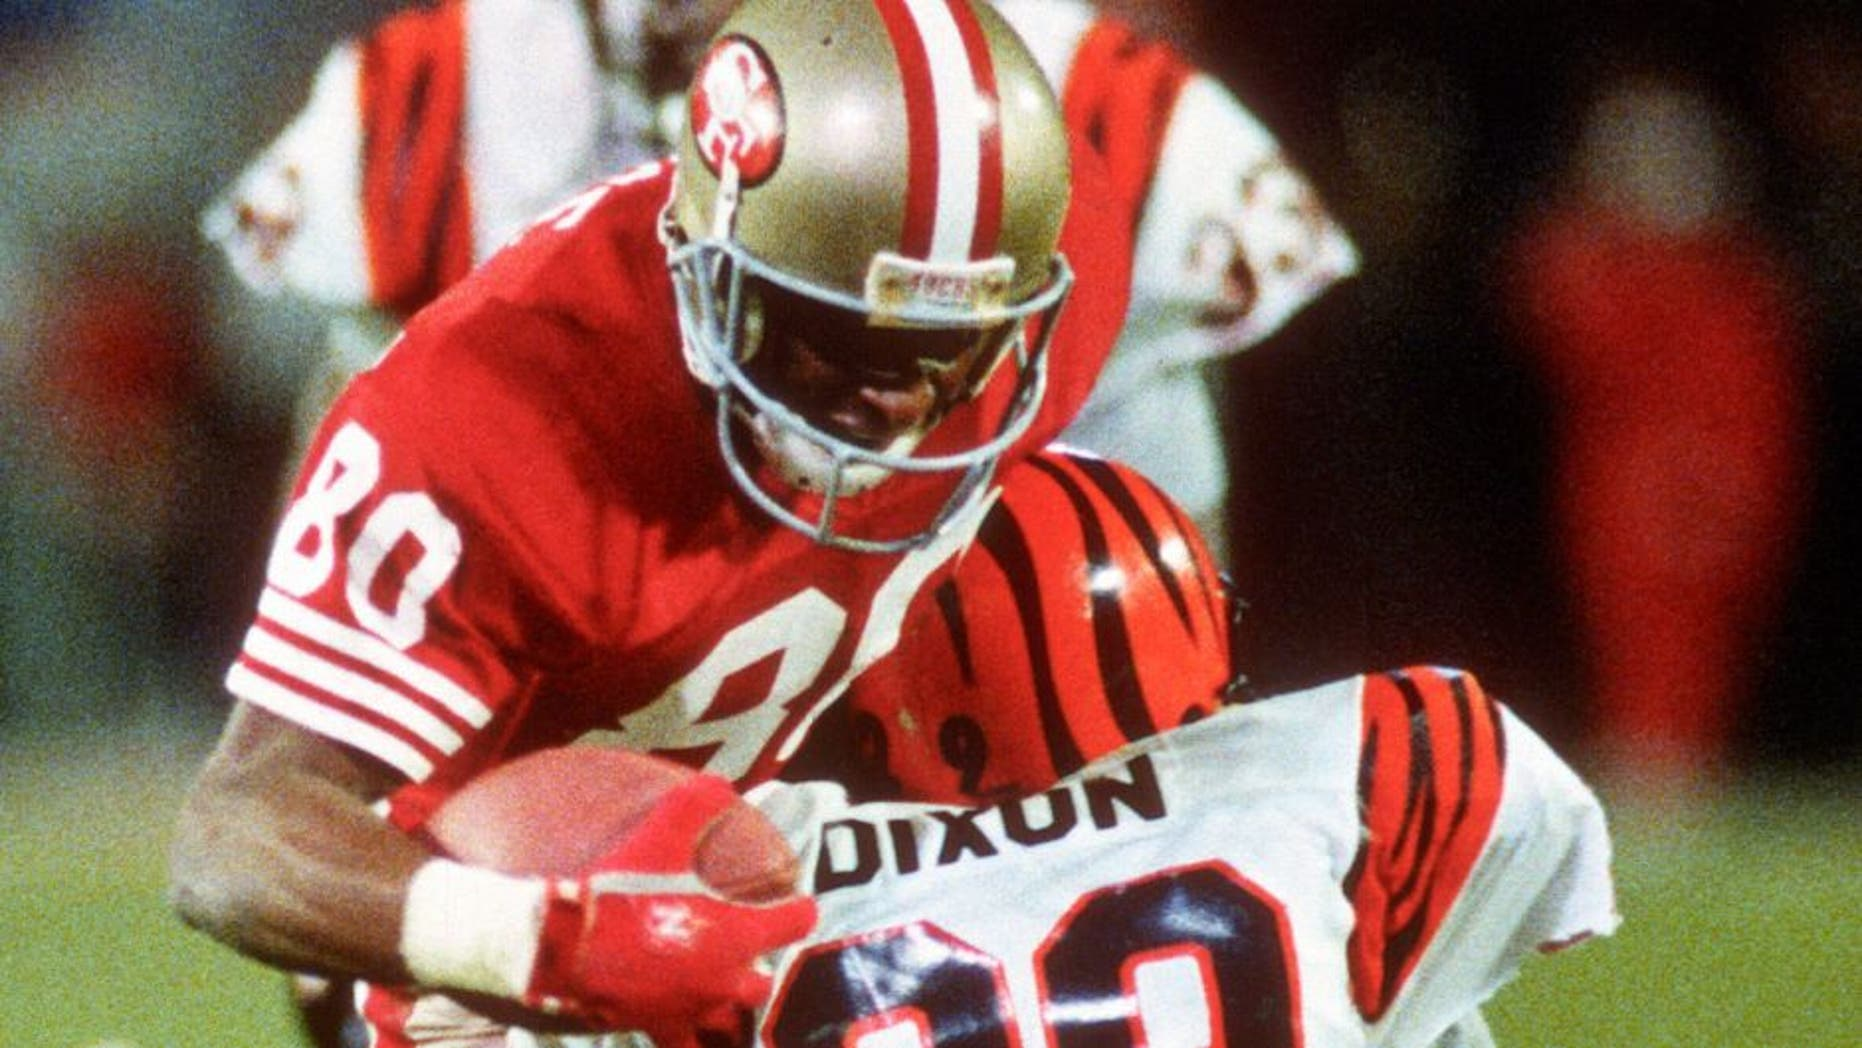 MIAMI, FL- JANUARY 22: Jerry Rice #80 of the San Francisco 49ers gets tackled by Rickey Dixon #29 of the Cincinnati Bengals during Super Bowl XXIII on January 22, 1989 at Joe Robbie Stadium in Miami, Florida. The 49ers won the Super Bowl 20-16. (Photo by Focus on Sport/Getty Images) *** Local Caption *** Jerry Rice; Rickey Dixon